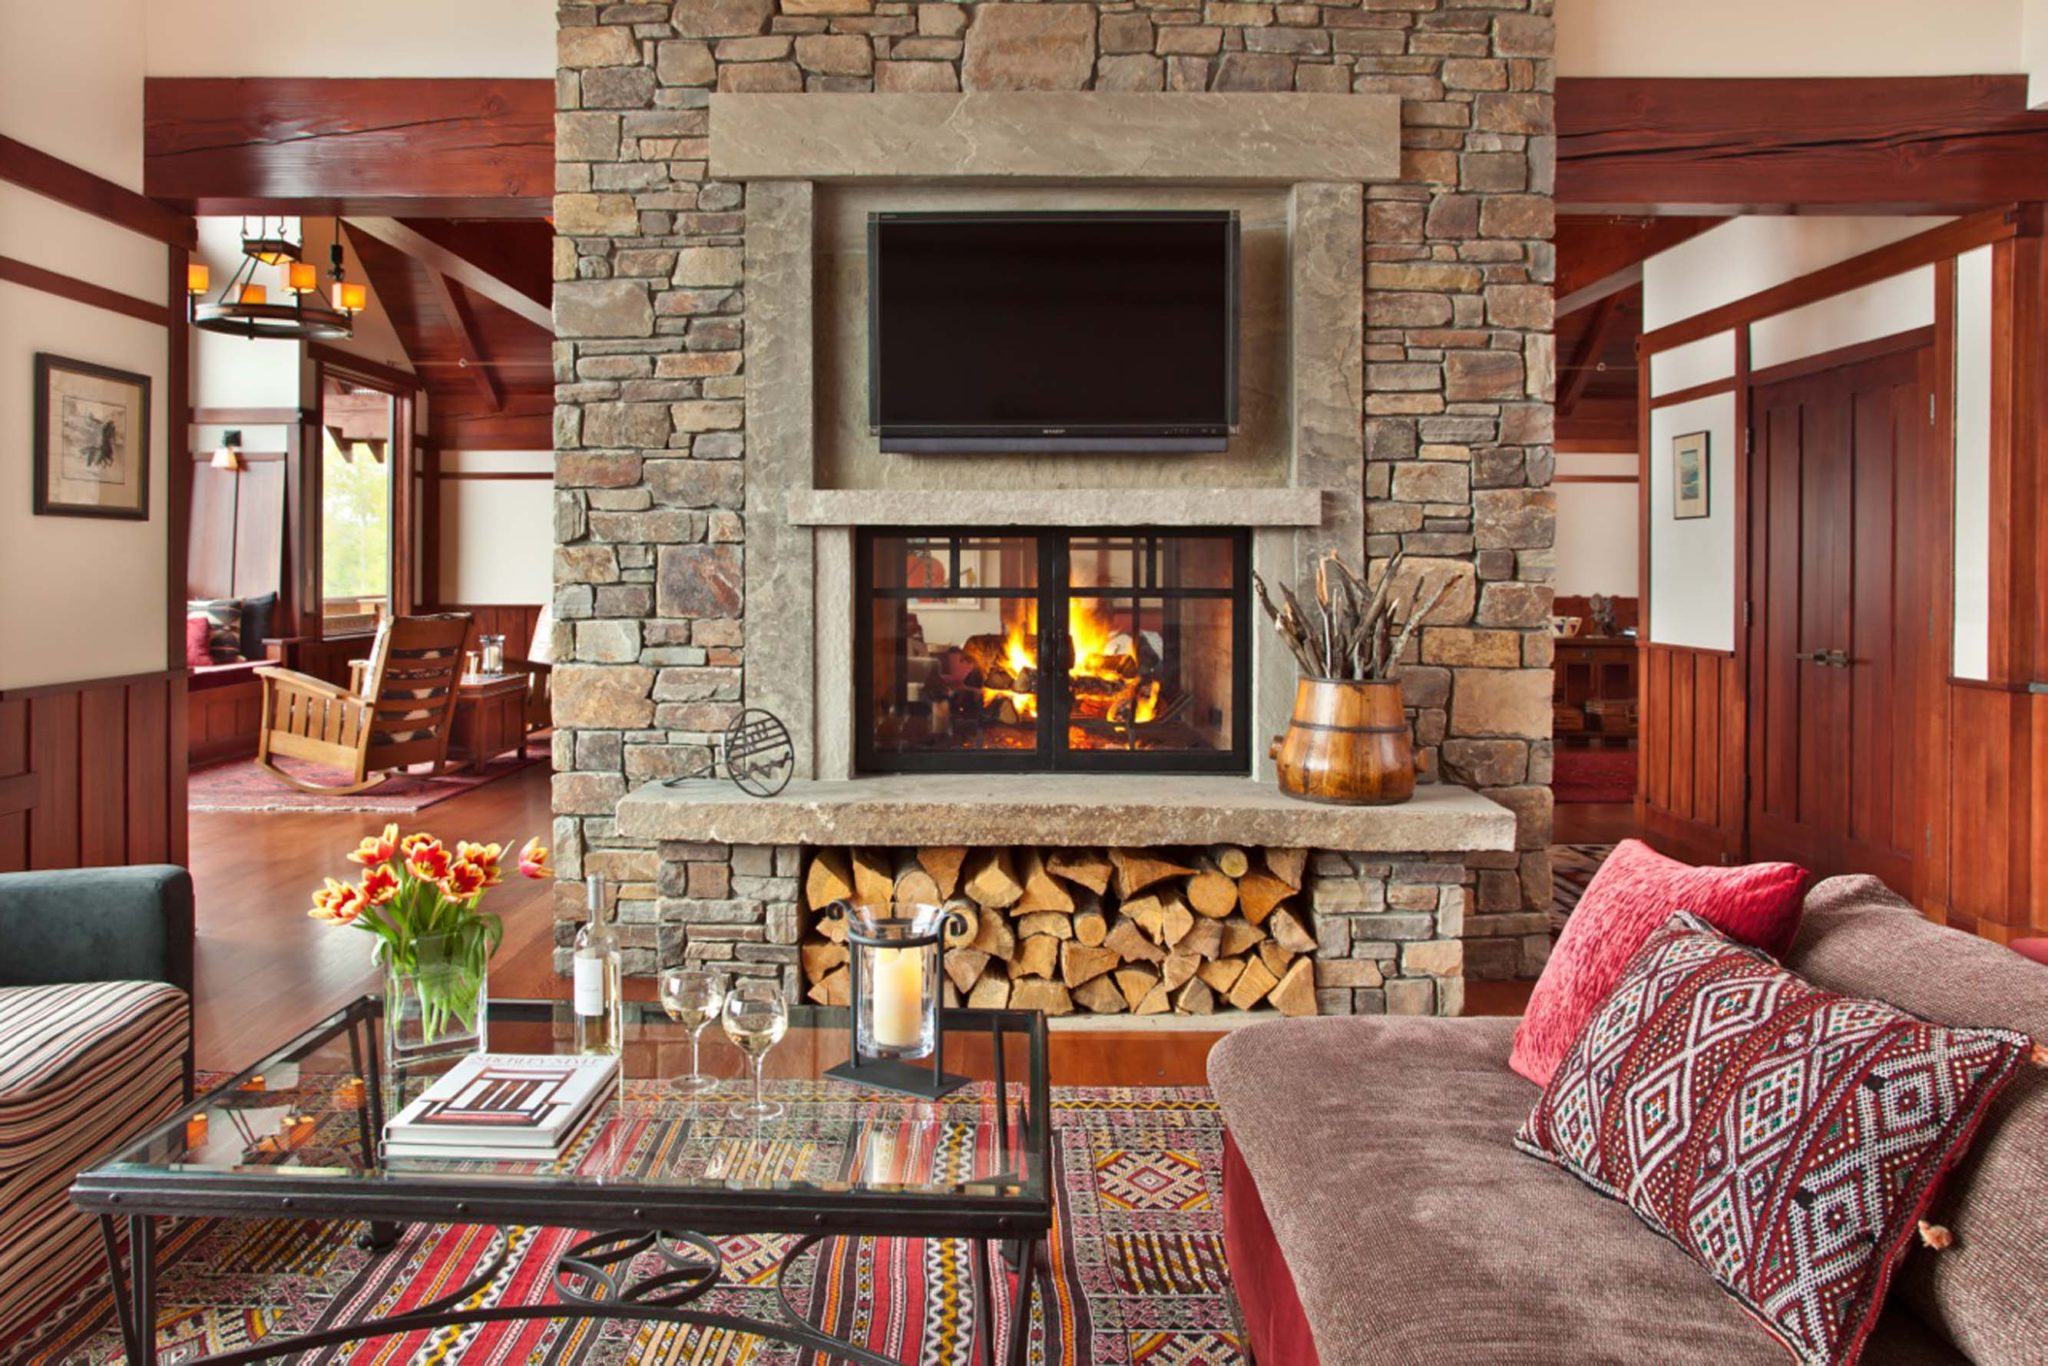 Jackson Hole Residence Family Room Fireplace by Huth Architects